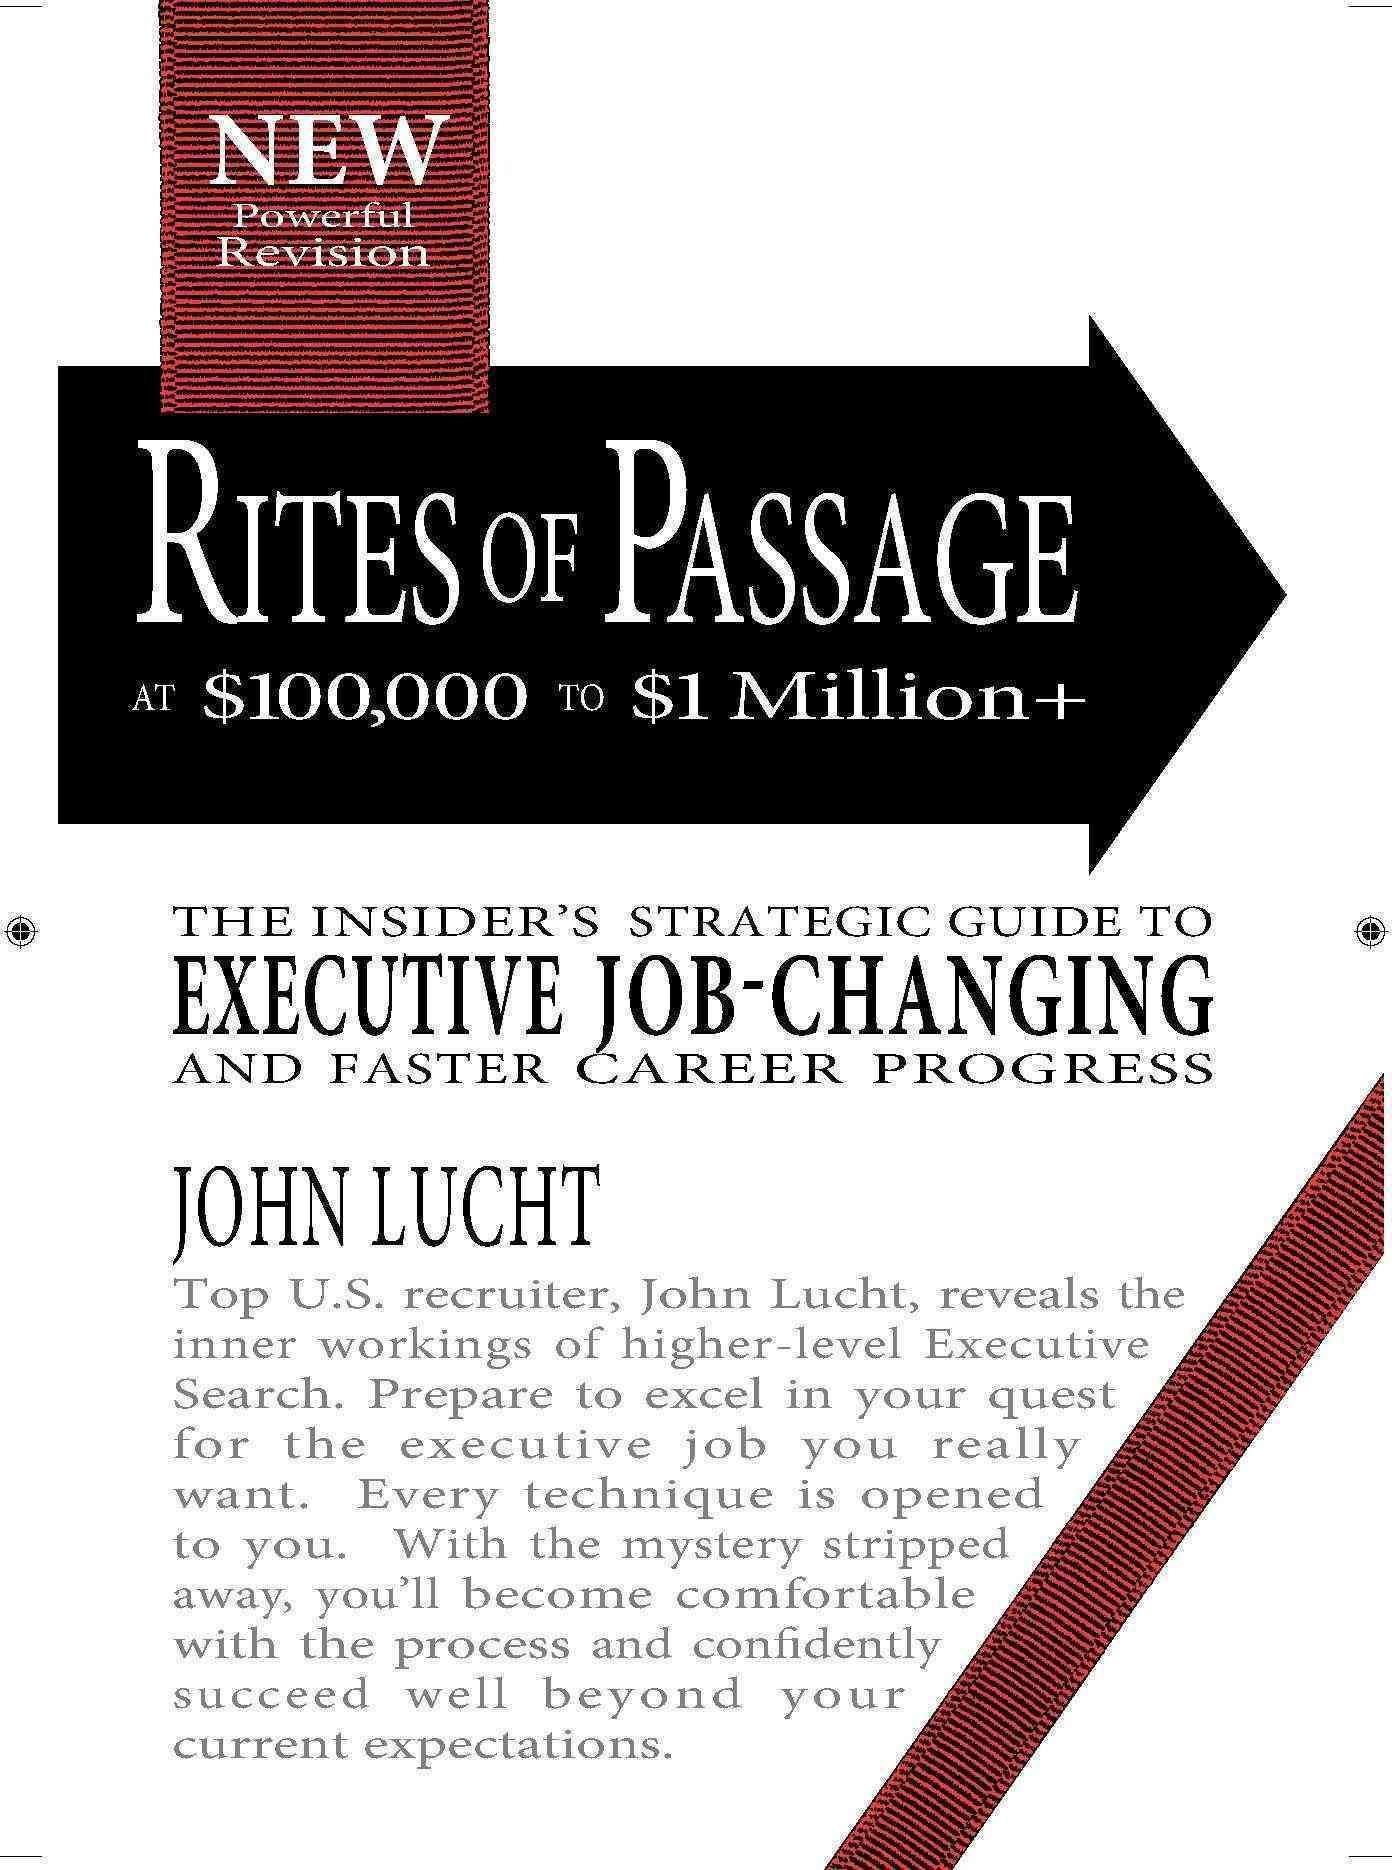 Rites of Passage at 100,000 to 1,000,000+ By Lucht, John